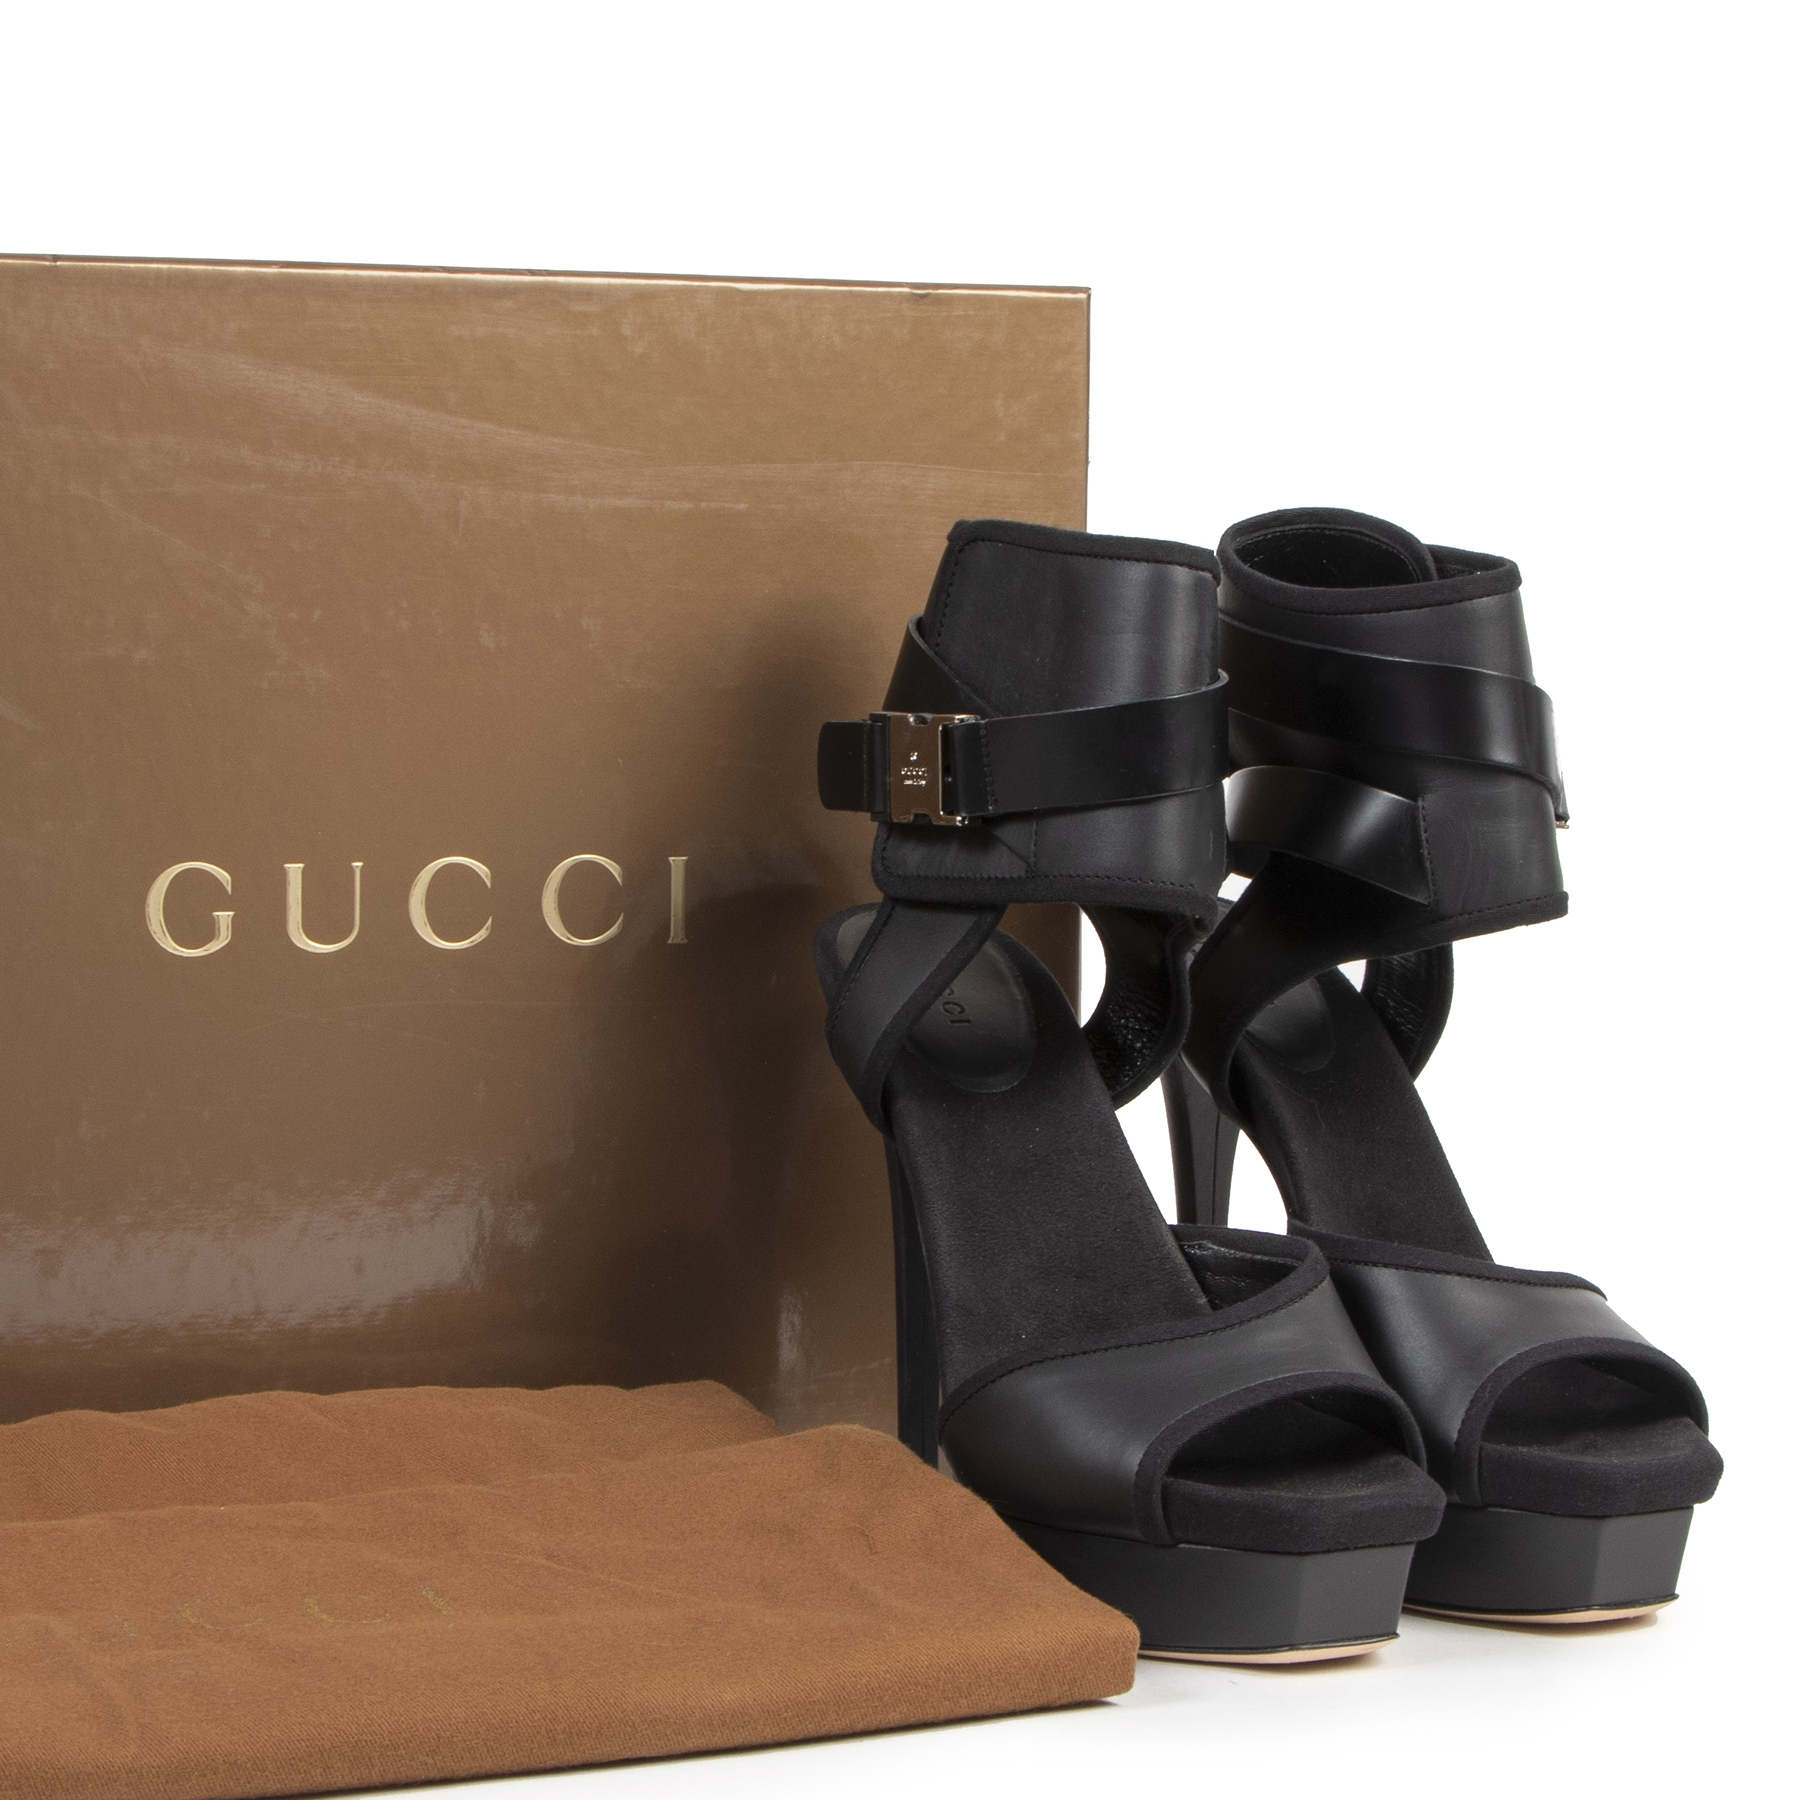 Are you looking for an authentic Gucci Babylon Stiletto Heels - Size 37,5?